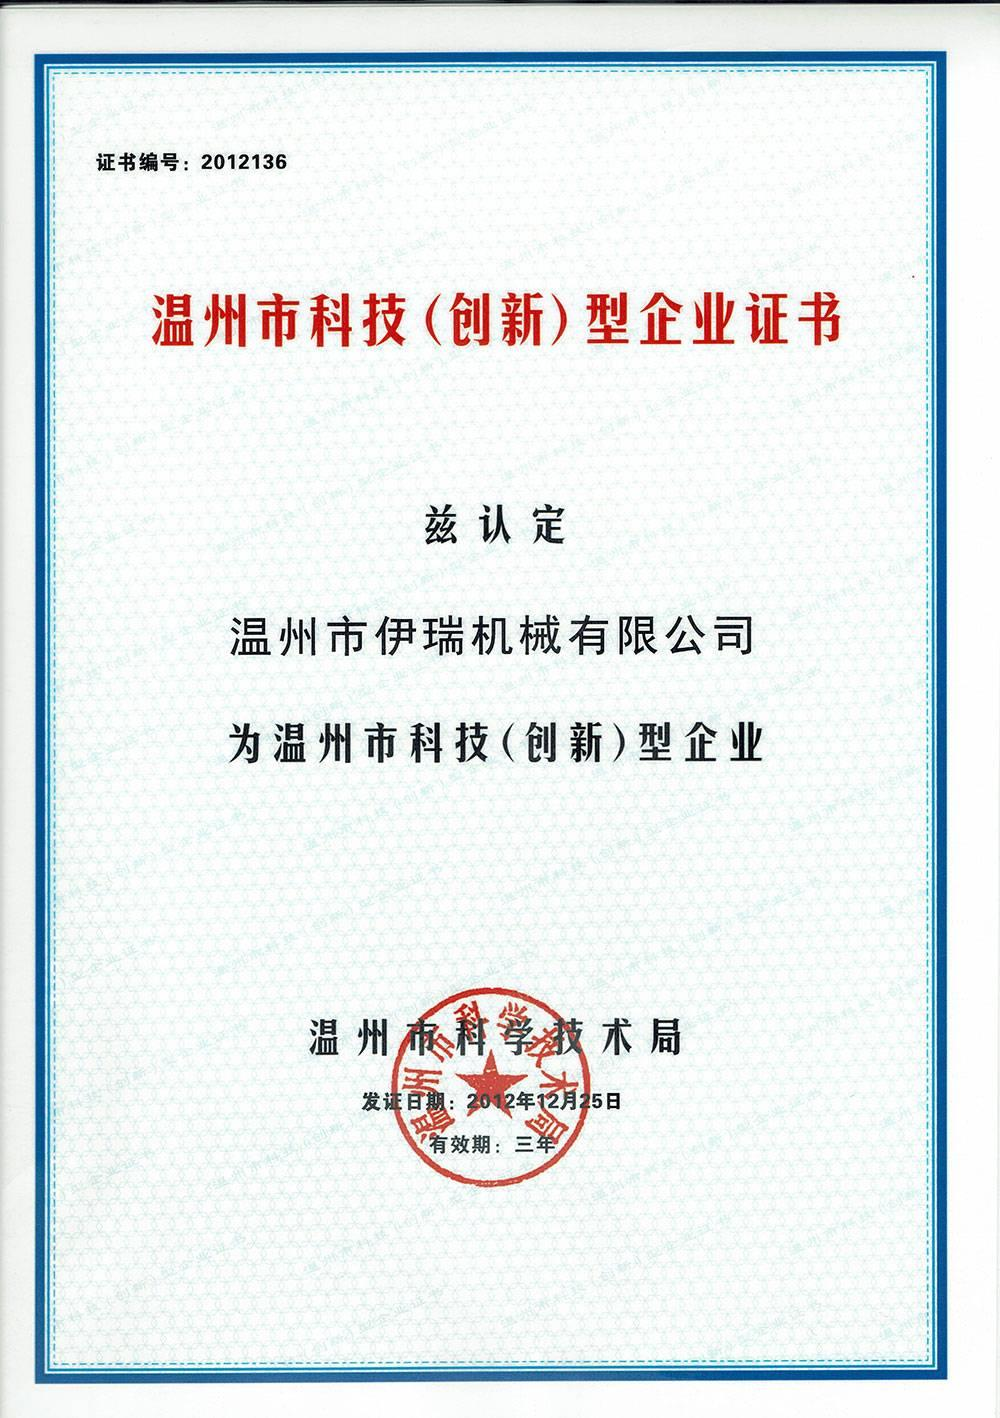 Wenzhou science and technology (innovation) - based enterprises